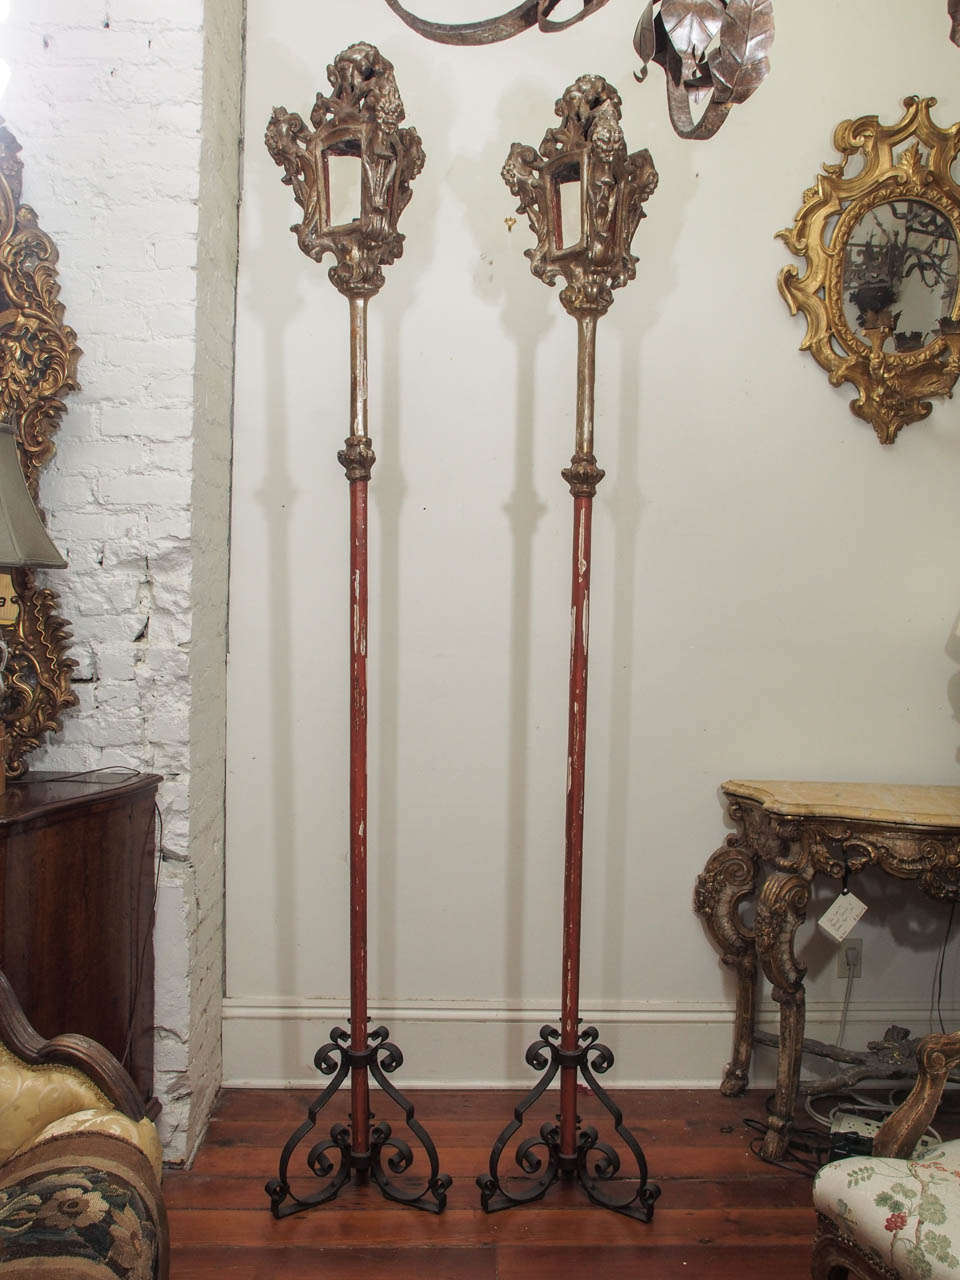 Pair of 19th c. Processional Pole Lanterns in Iron Stands. This pair is silver gilt. They are three sided with removable iron stands.